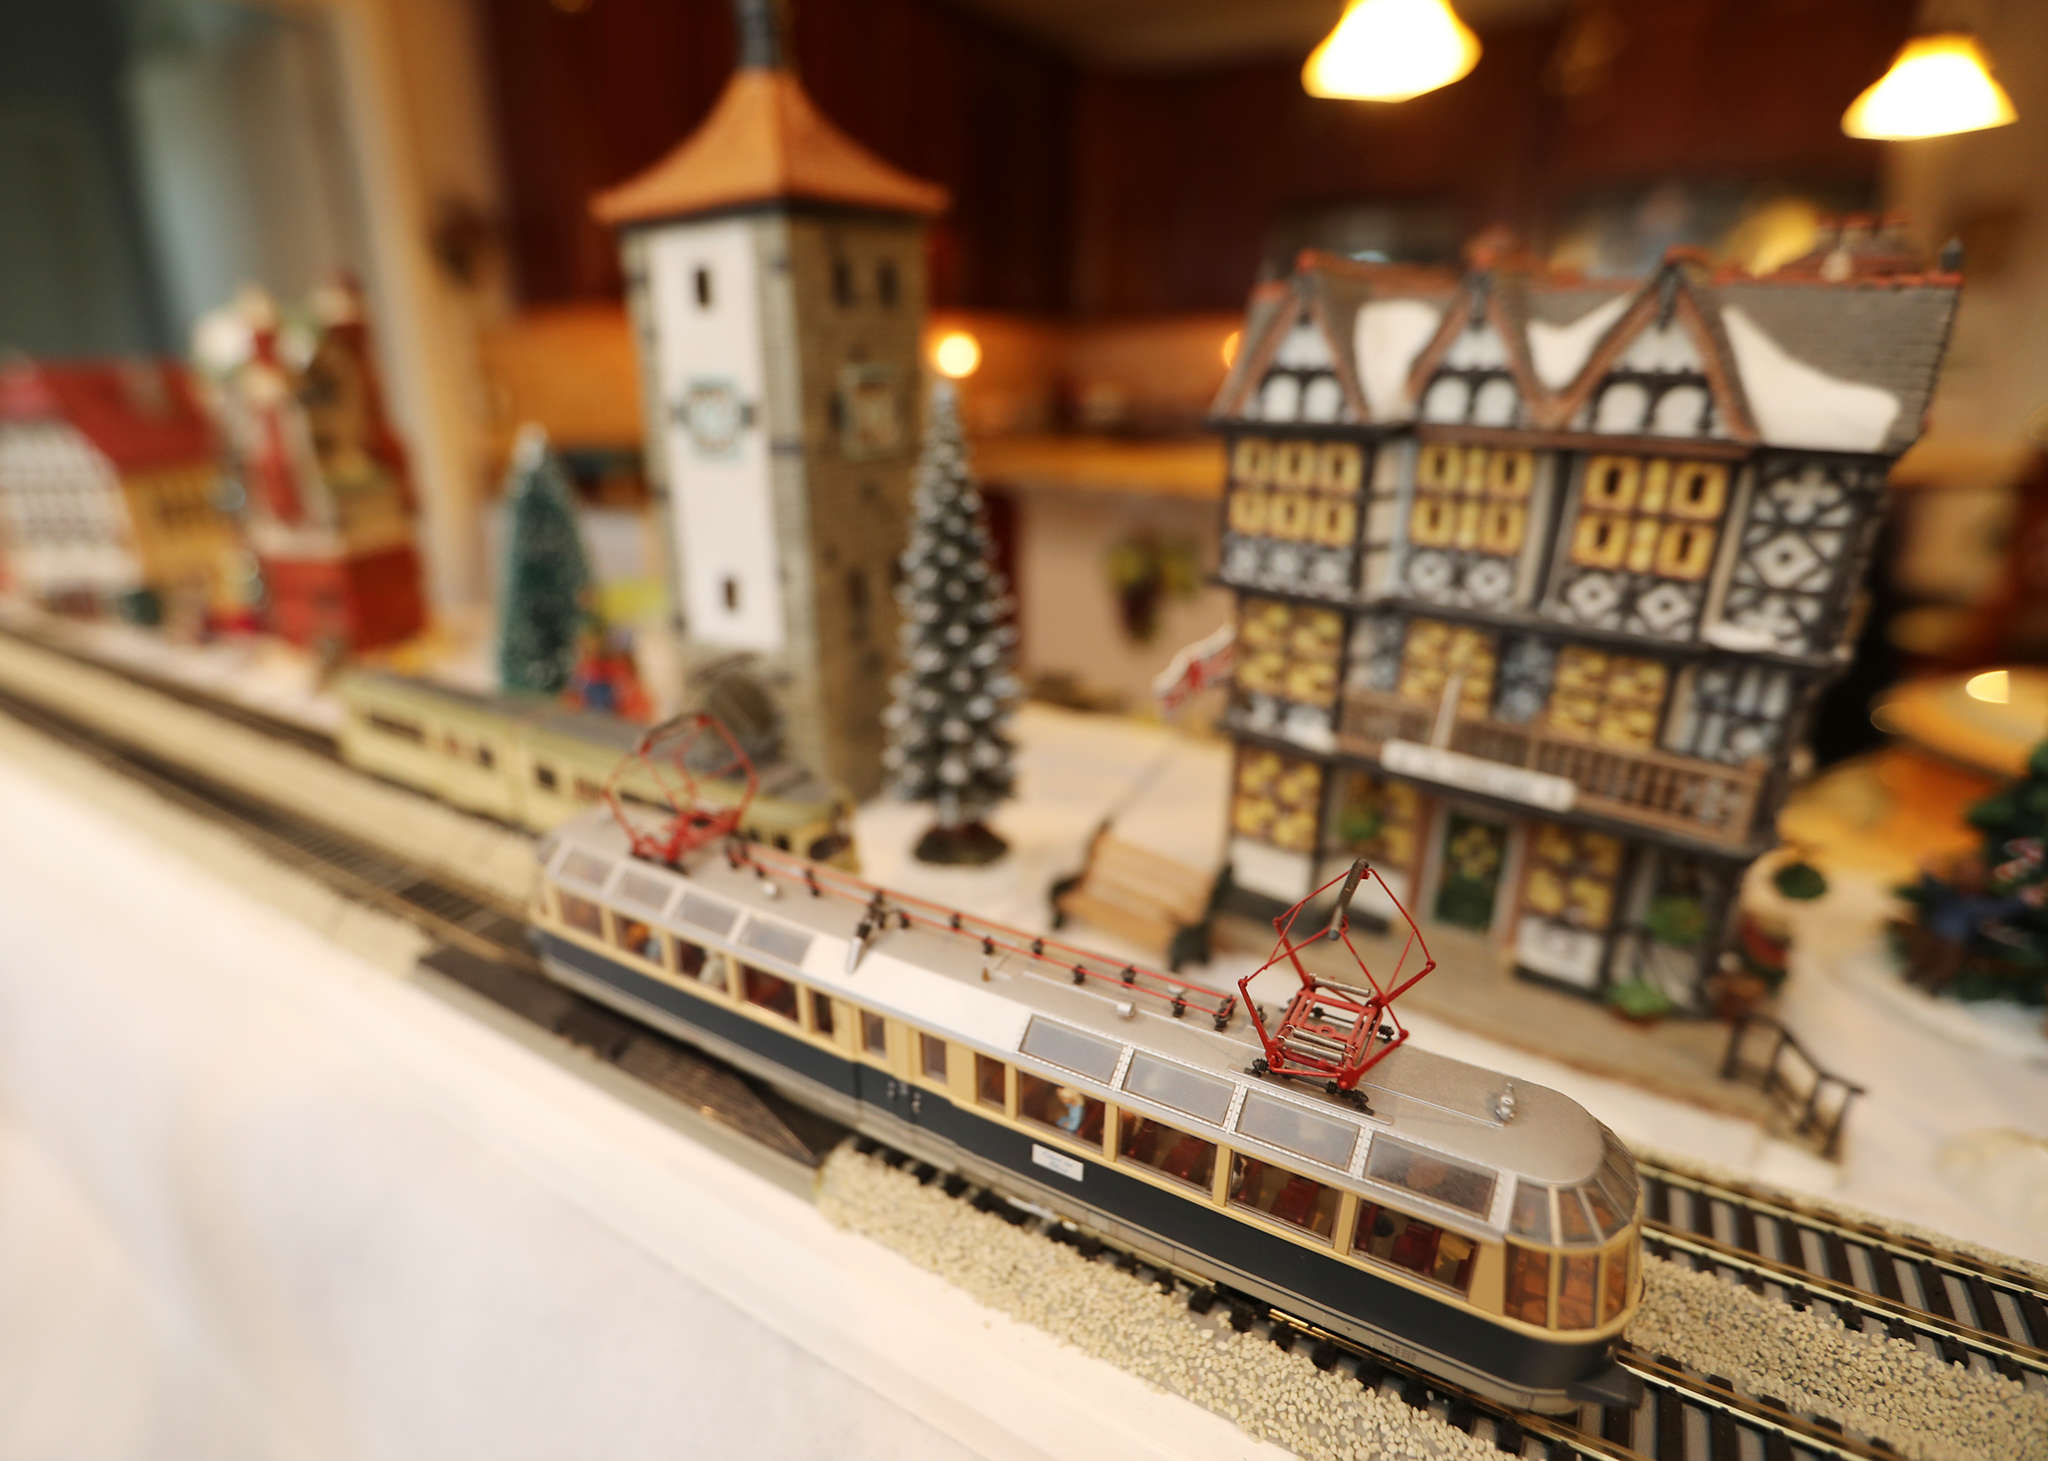 Mike Russo´s favorite display, a consolidated Christmas version of a model train and European village, has replicas of actual structures that the pair have seen while traveling.